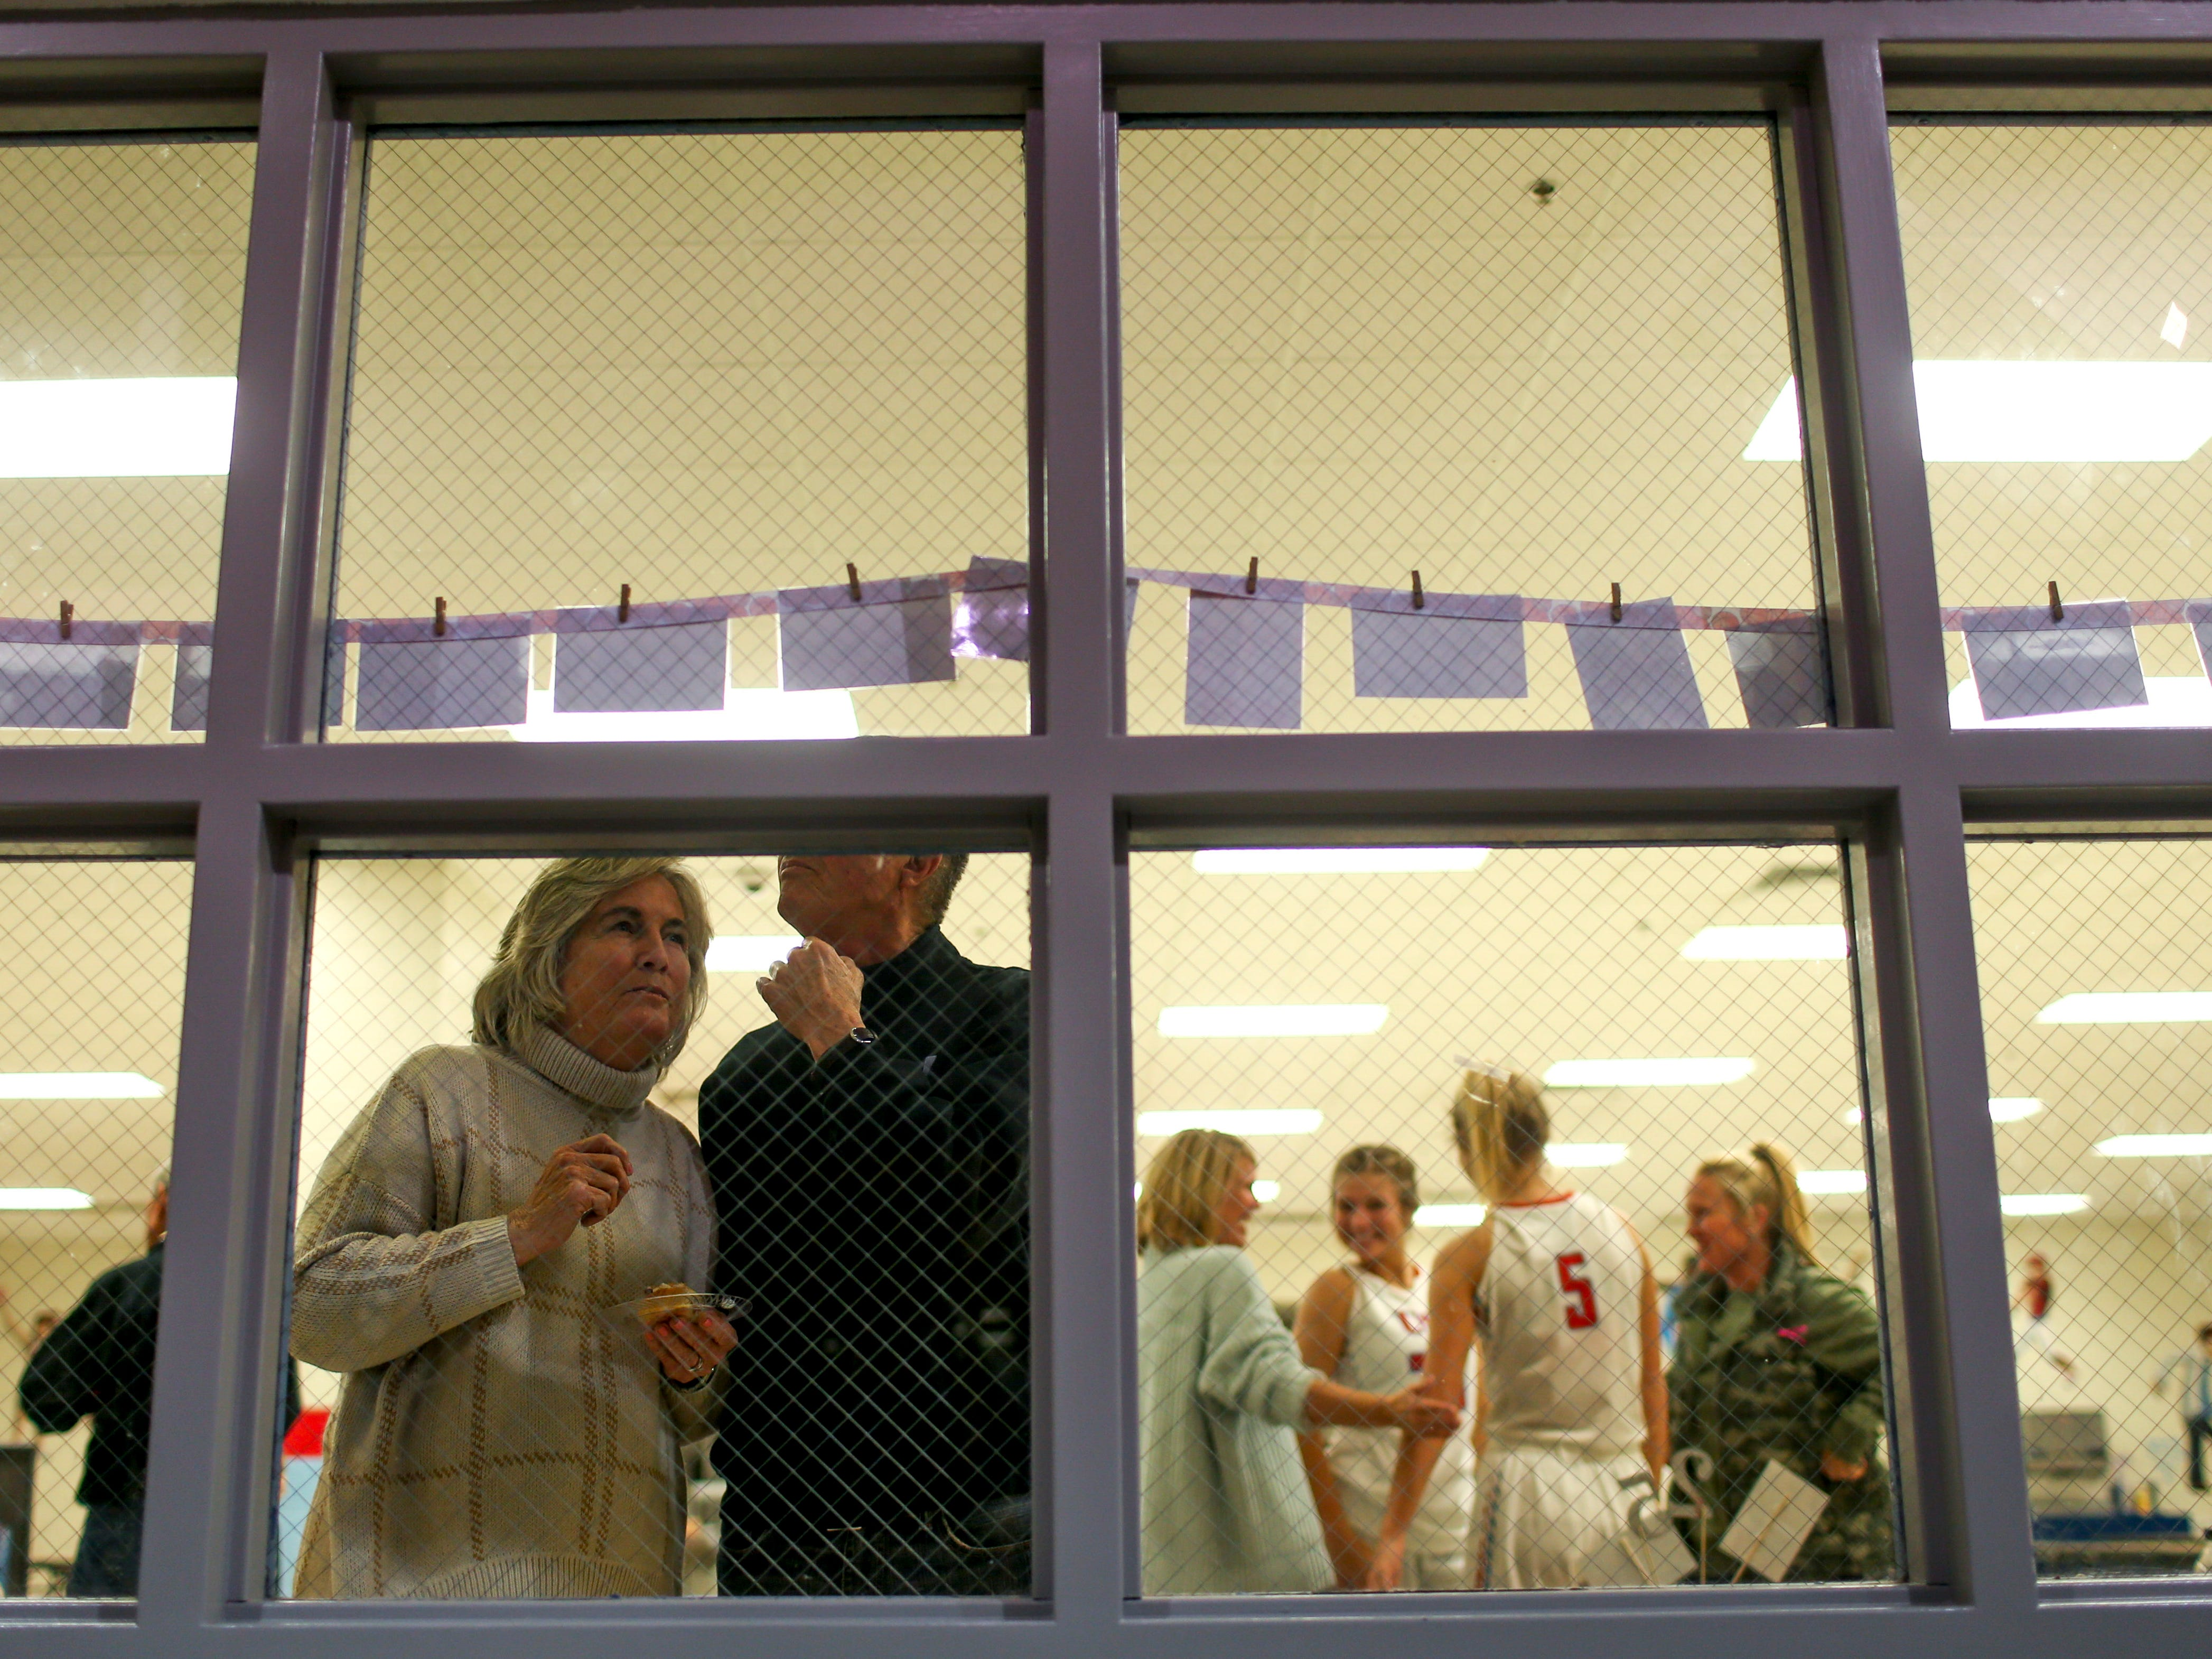 Visitors to the jersey number 25 retirement party examine old photos of Anna Jones strung up in the window at University School of Jackson in Jackson, Tenn., on Friday, Dec. 7, 2018.